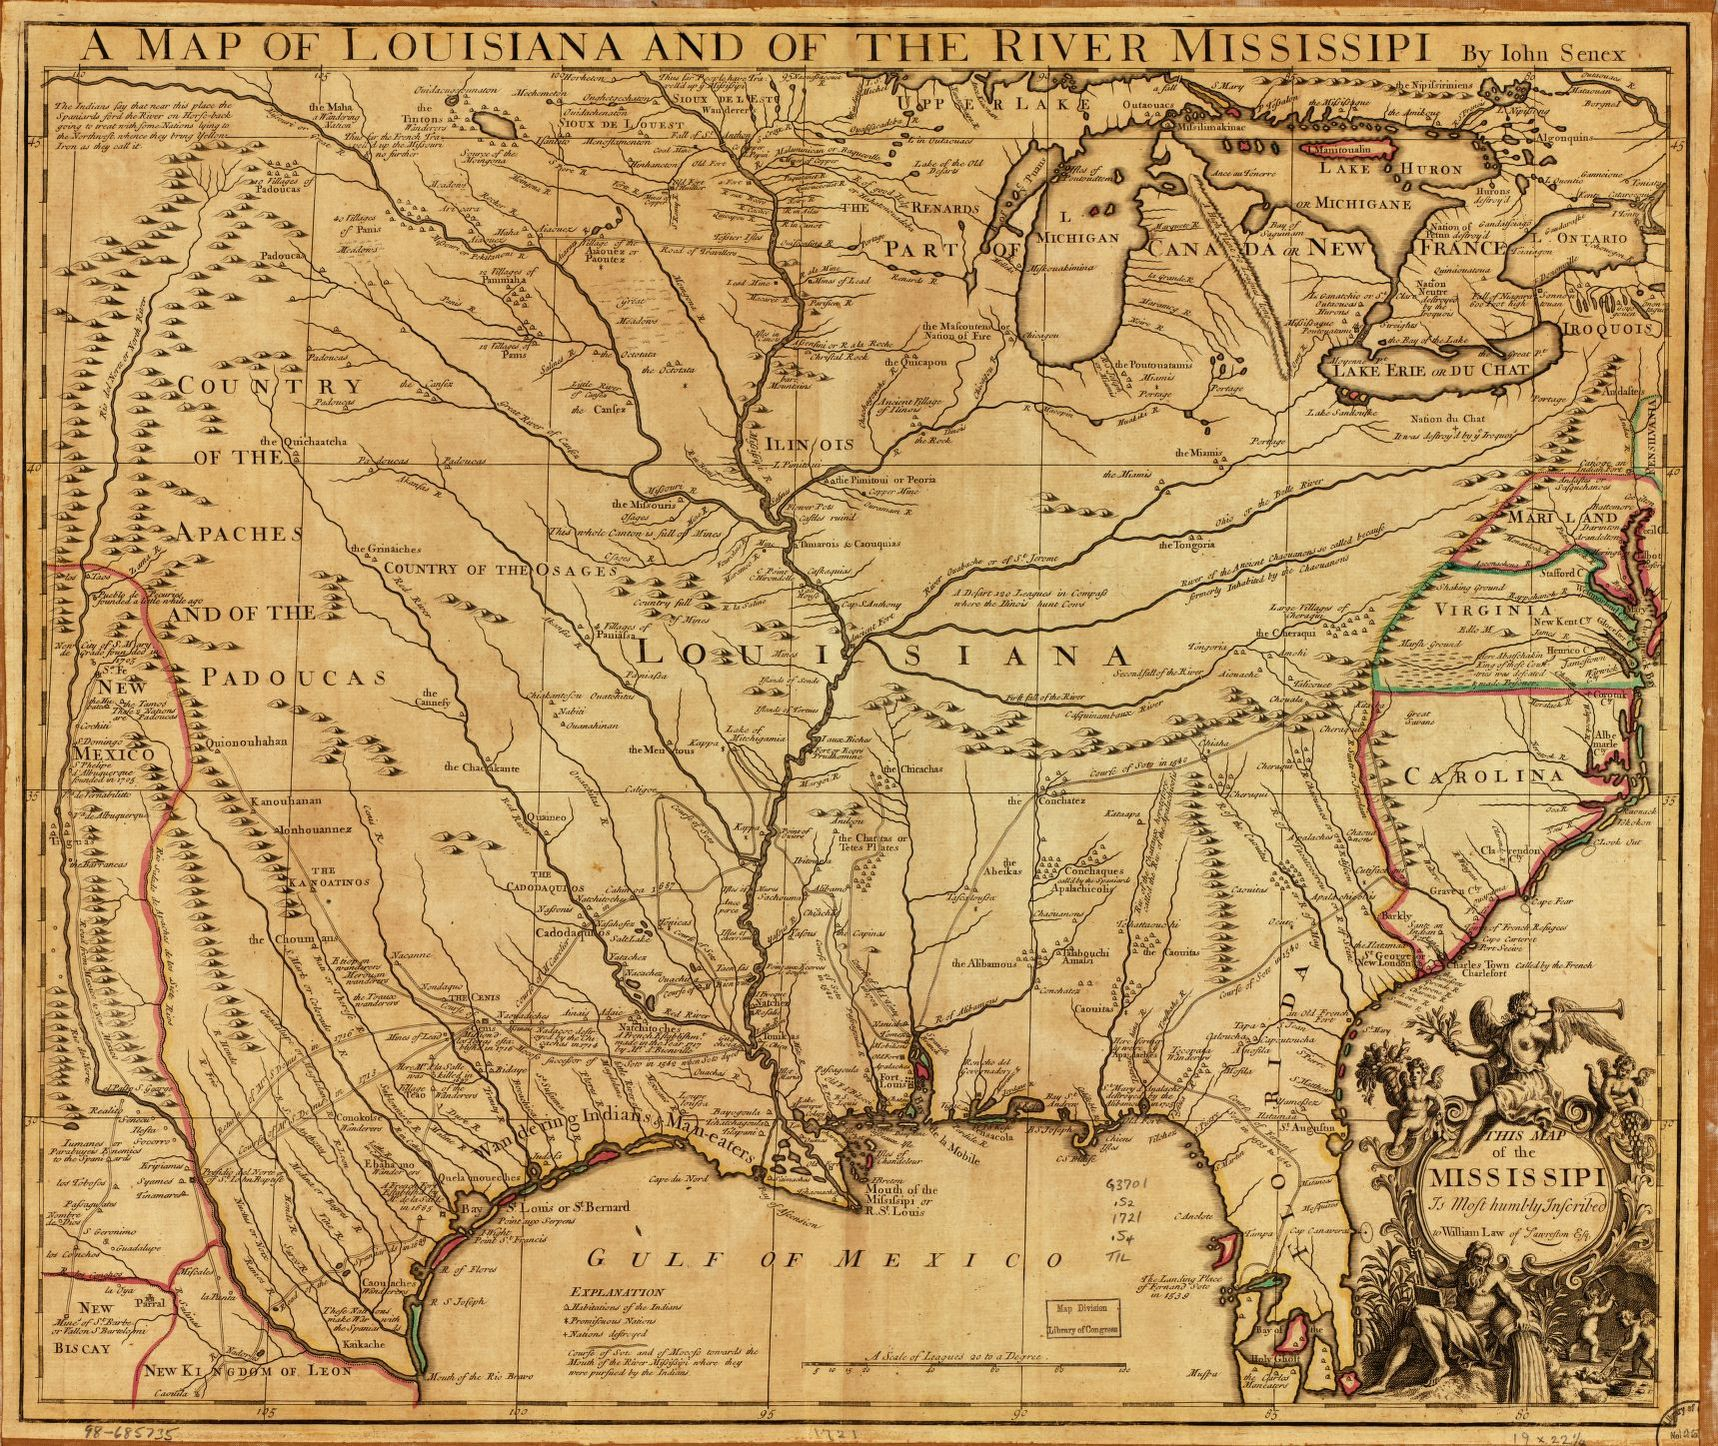 1721 - A Map of Louisiana and of the River Mississippi